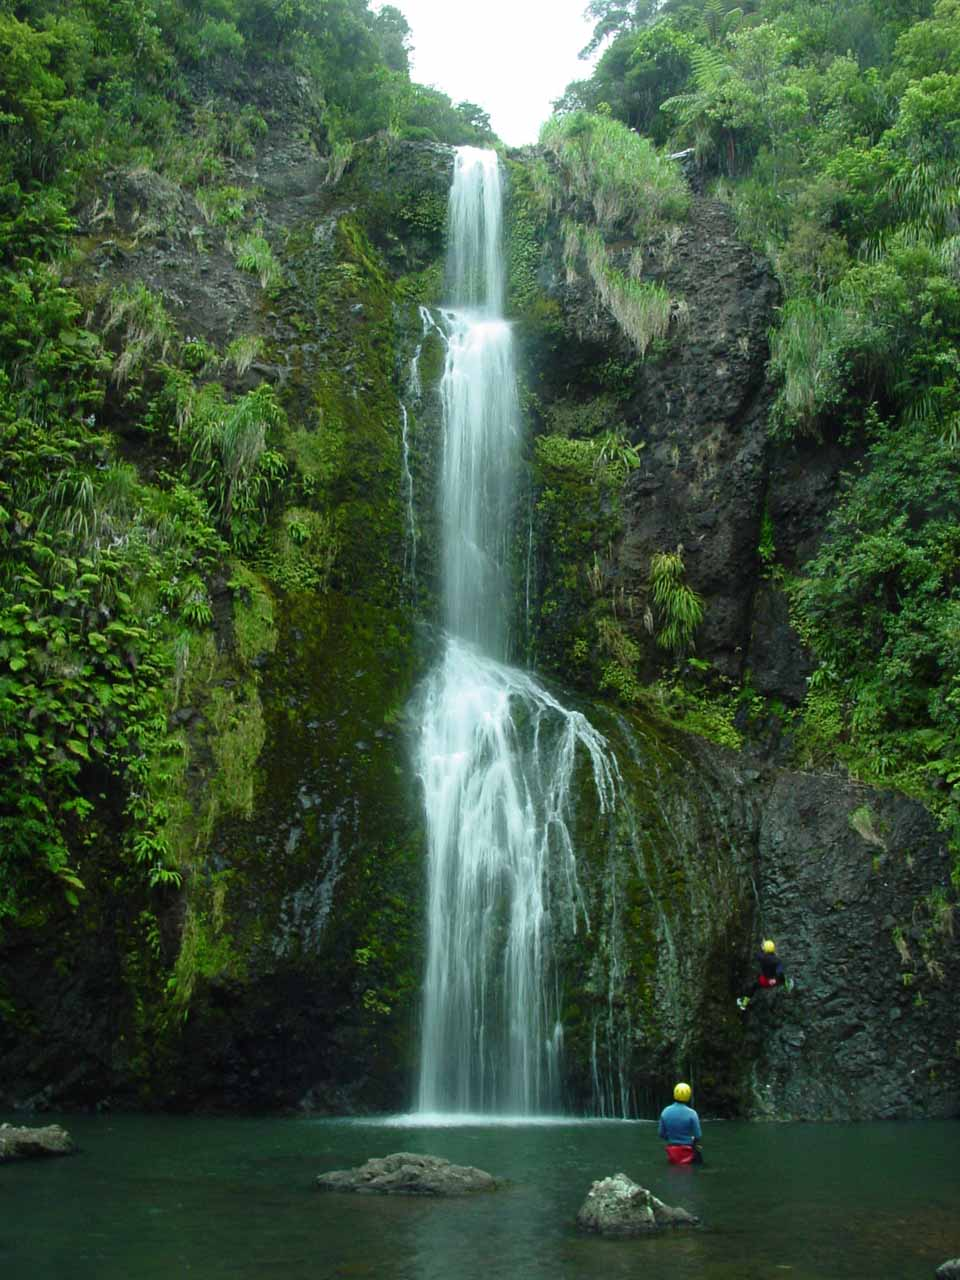 On my 2004 visit to Kitekite Falls, I saw abseilers rappeling alongside the waterfall